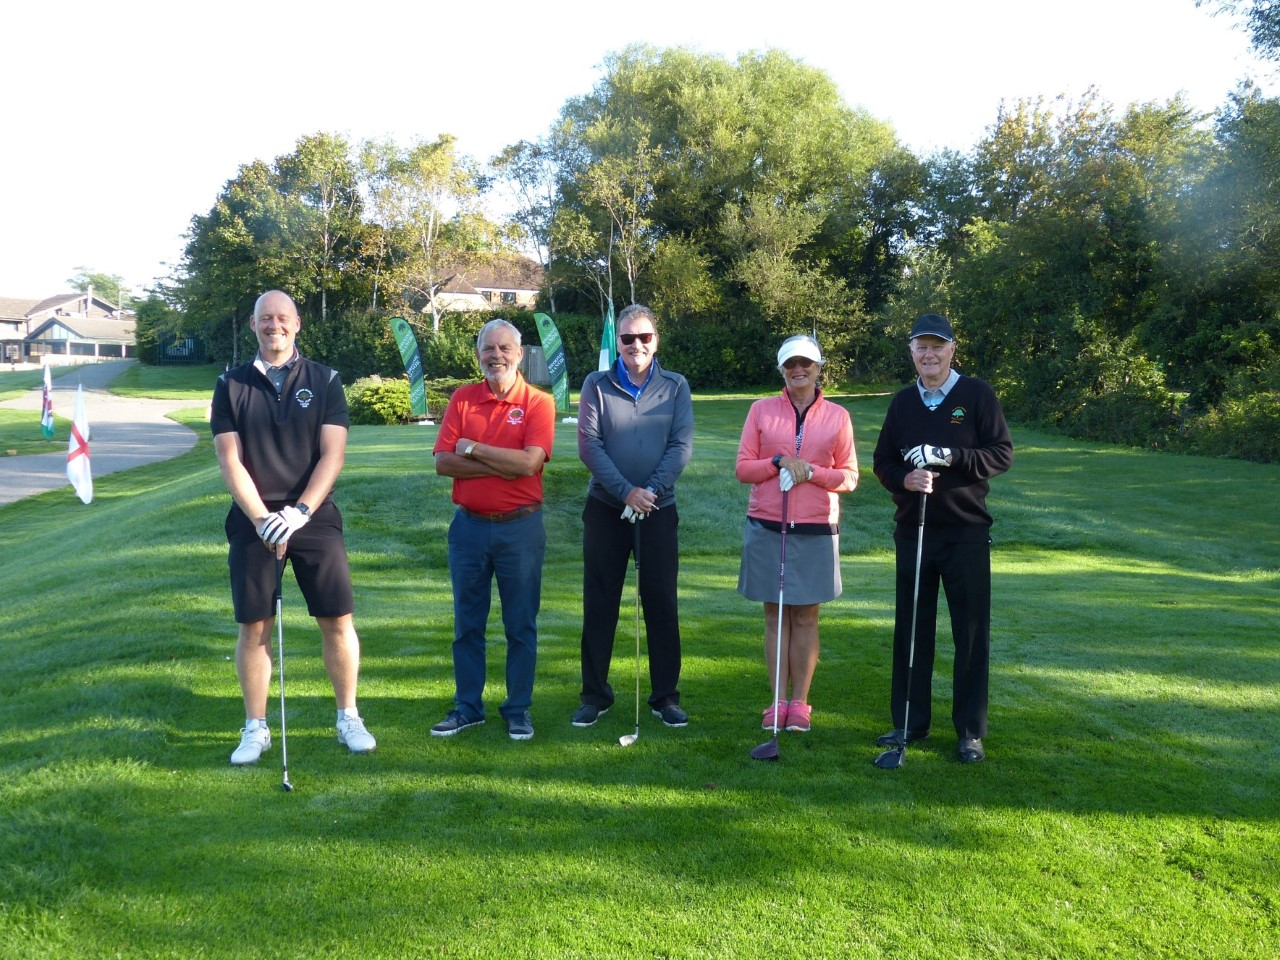 Senior Captain's day at Broome Manor Golf Club raises over £3,000 for young carers